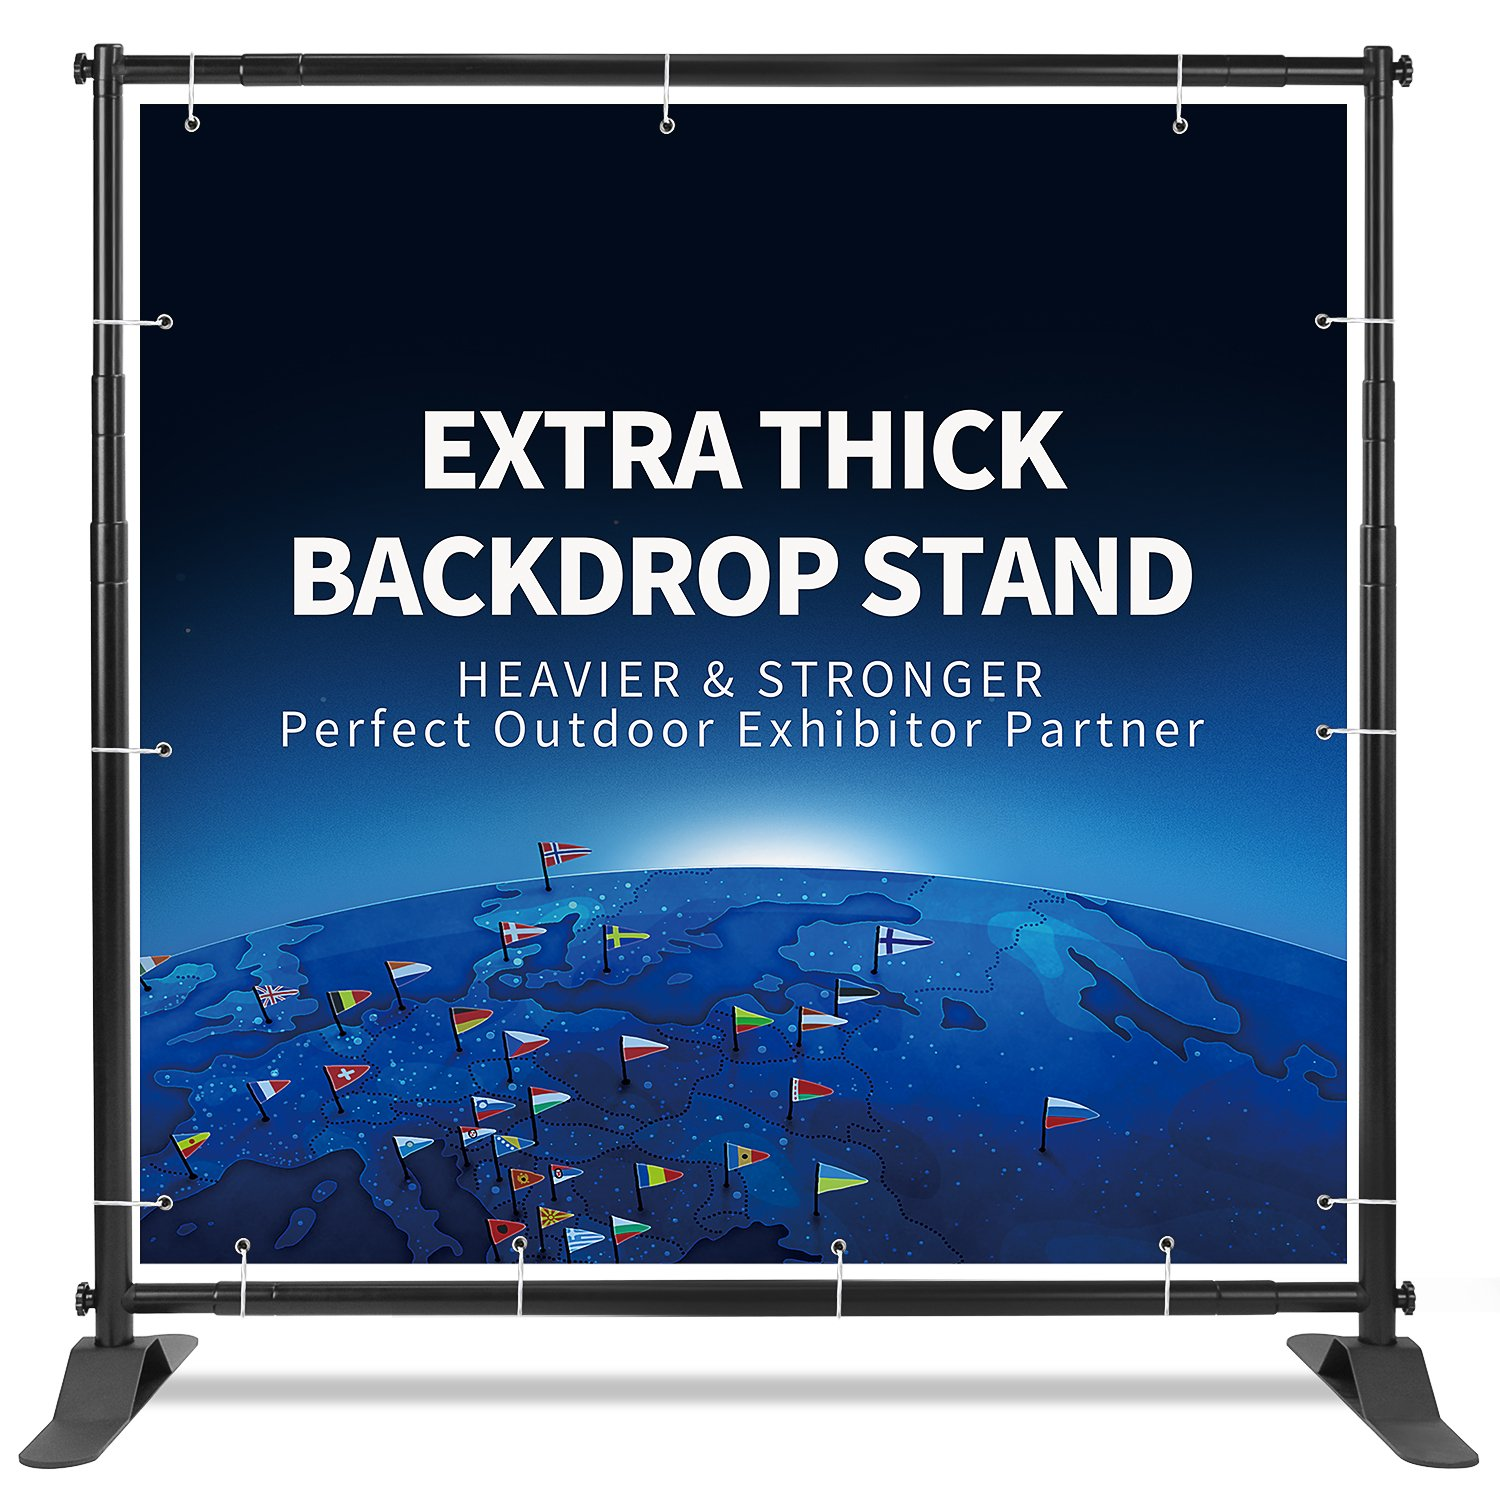 T-SIGN 5x7-8x10 ft Heavy Duty Backdrop Banner Stand, Thicker Professional Large Telescopic Display Step and Repeat Stand for Photography, Carry Bag by T-SIGN